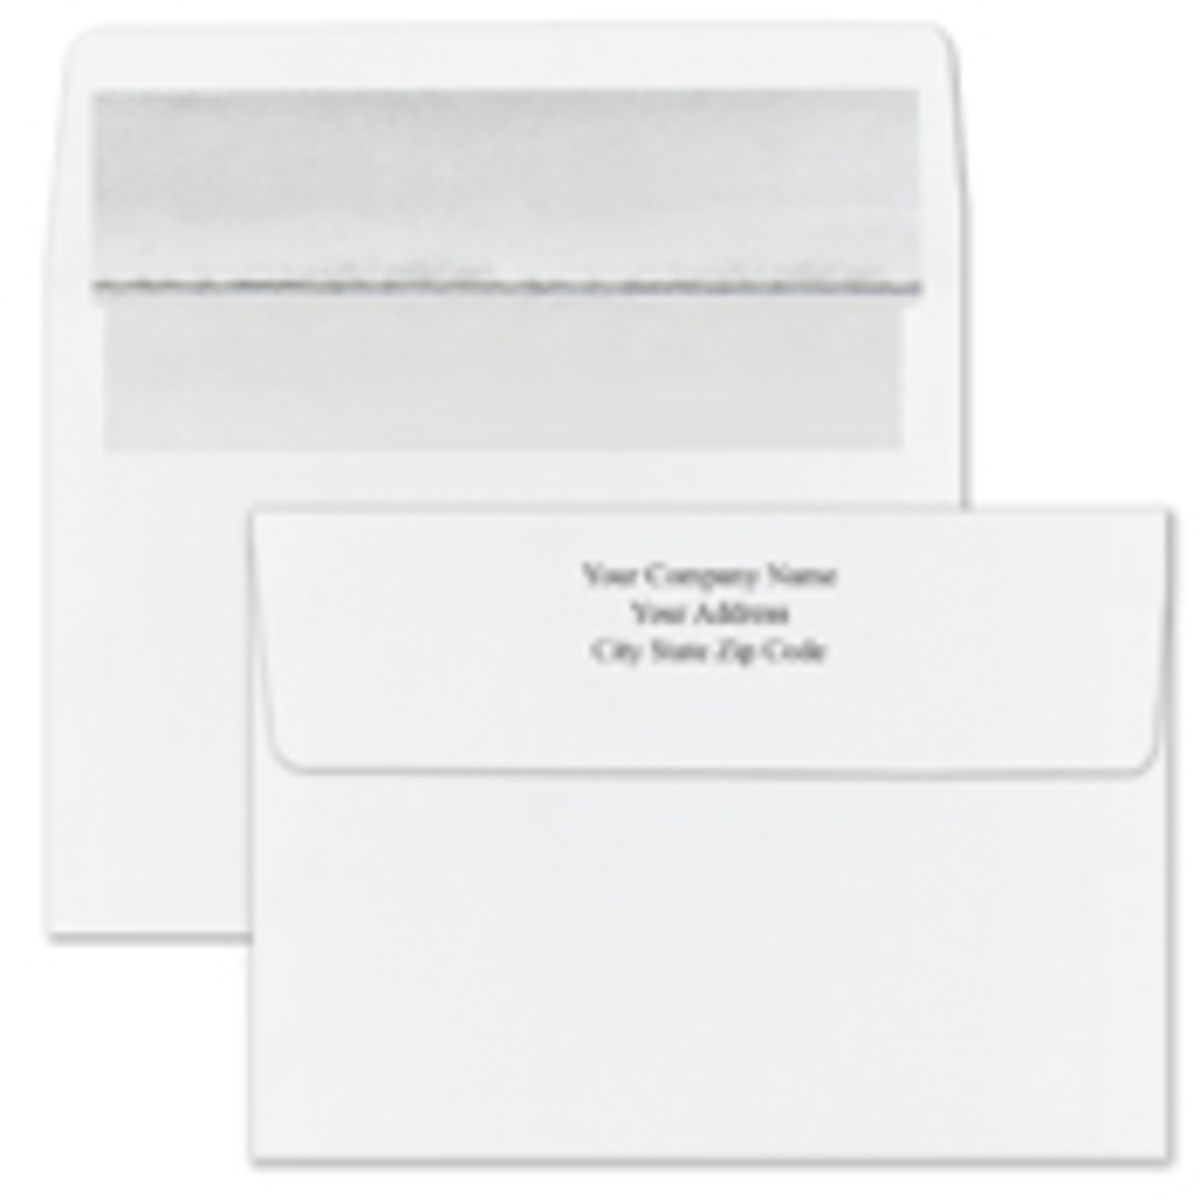 Recycled Shiny Silver Foil Lined White Envelope - Printed